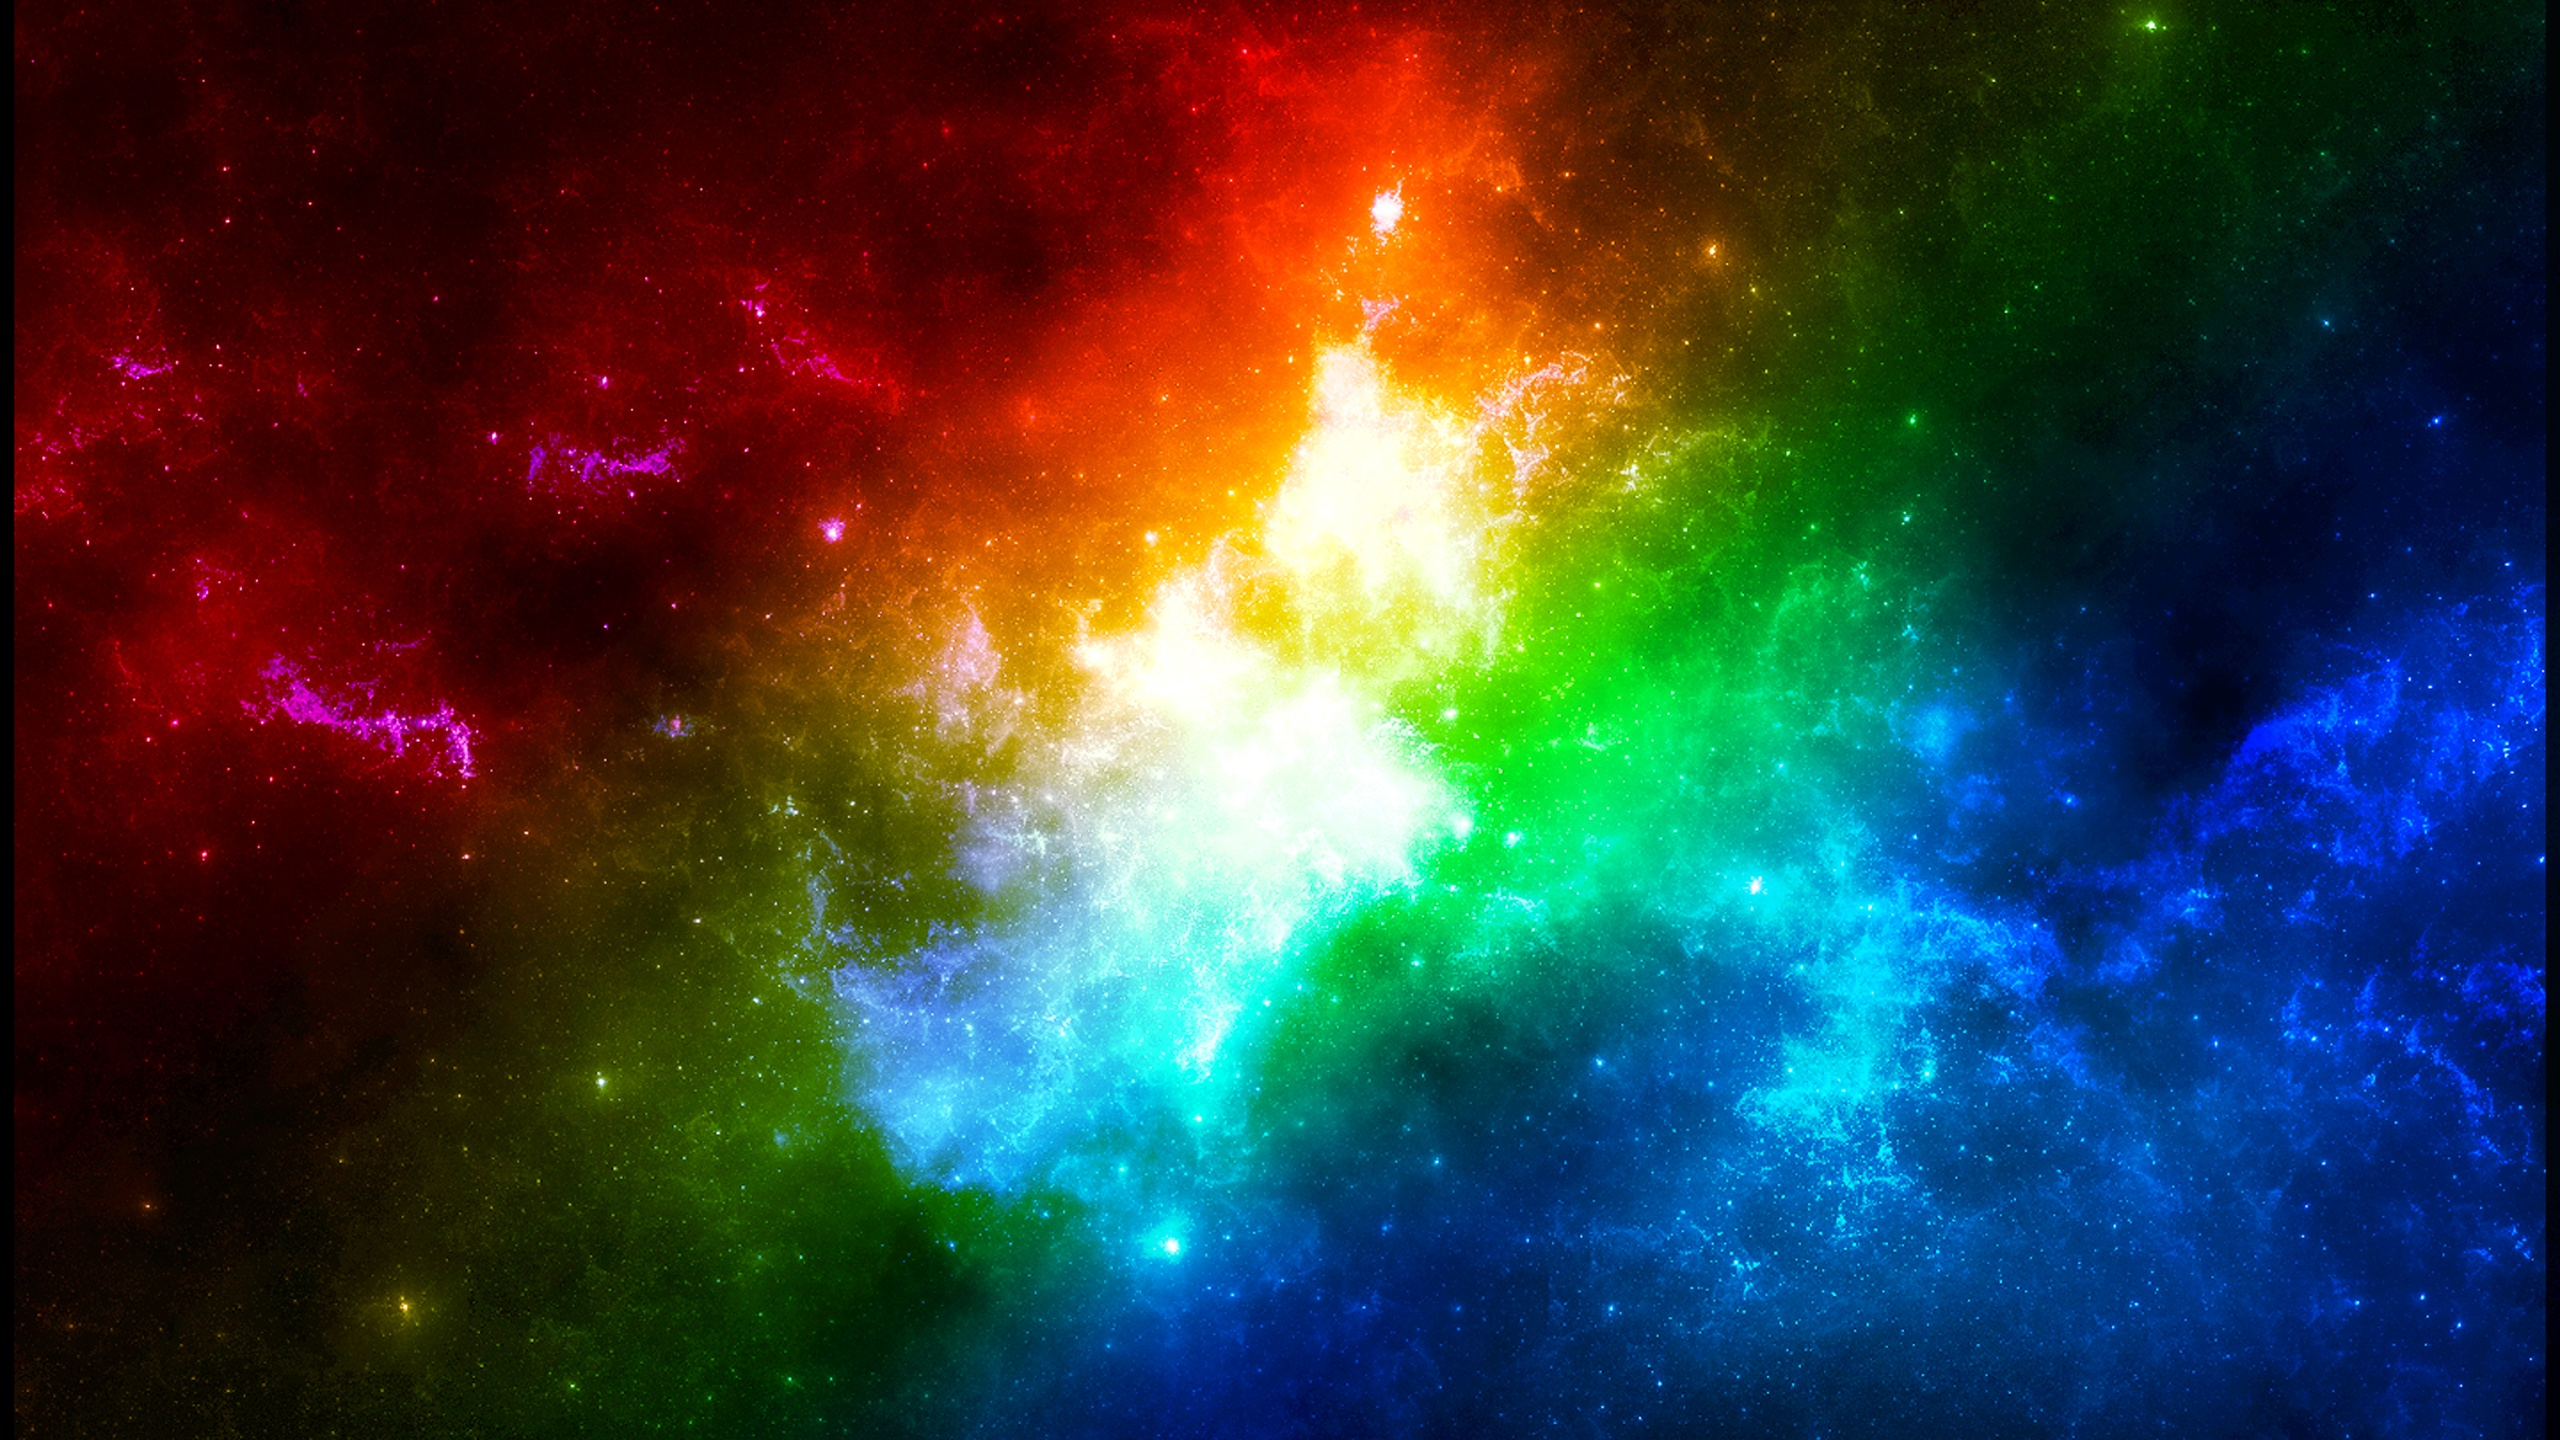 Wallpaper colors in space 2560x1600 hd picture image - Space 2560 x 1440 ...